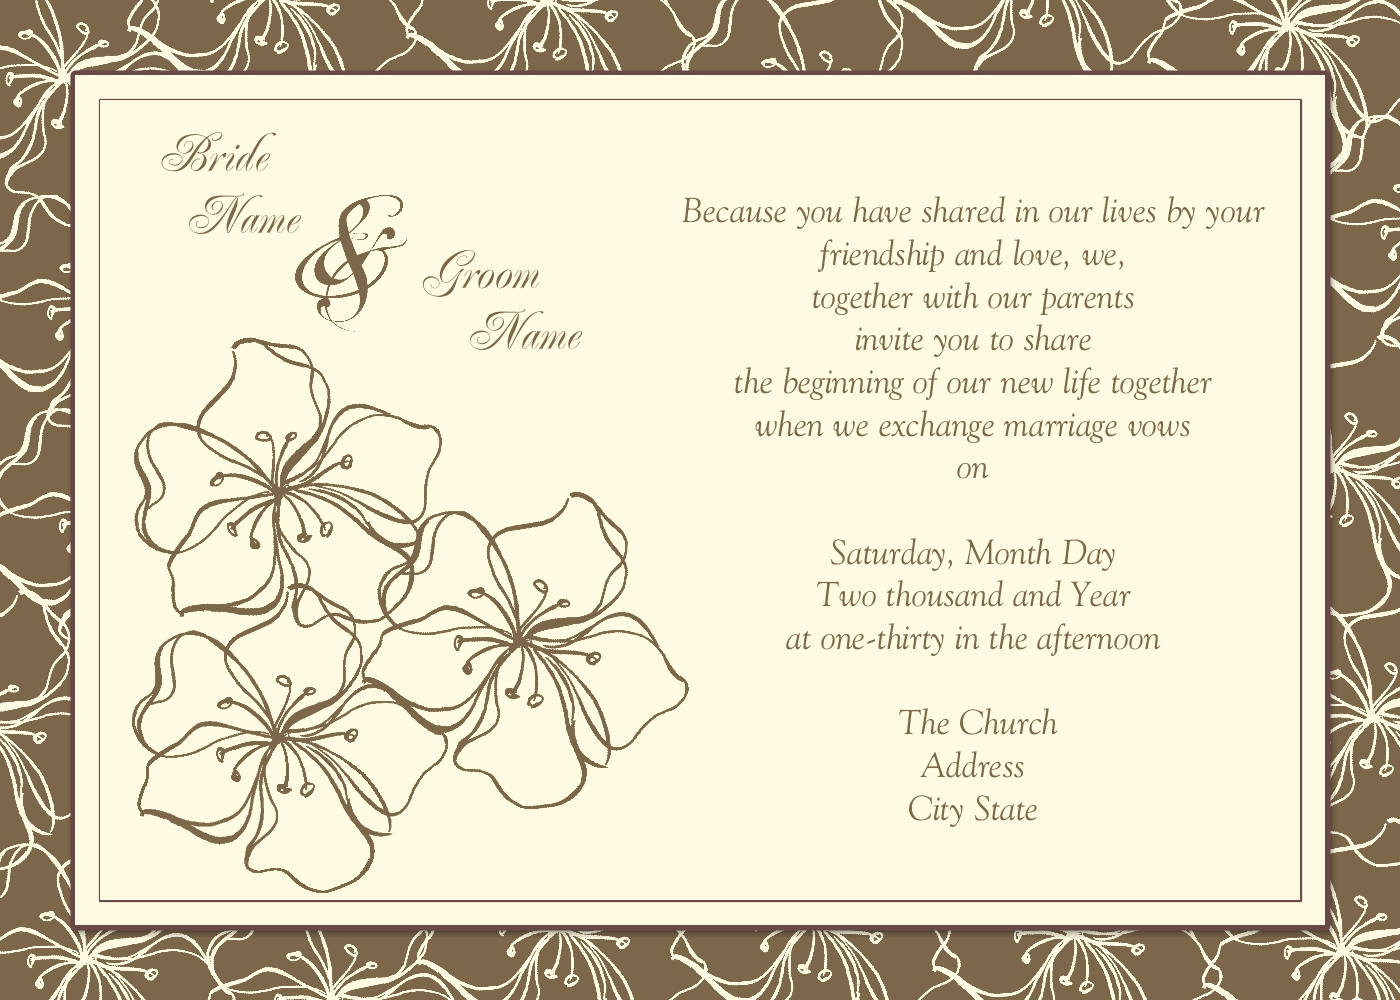 Best Wedding Card Messages | Wedding Cards